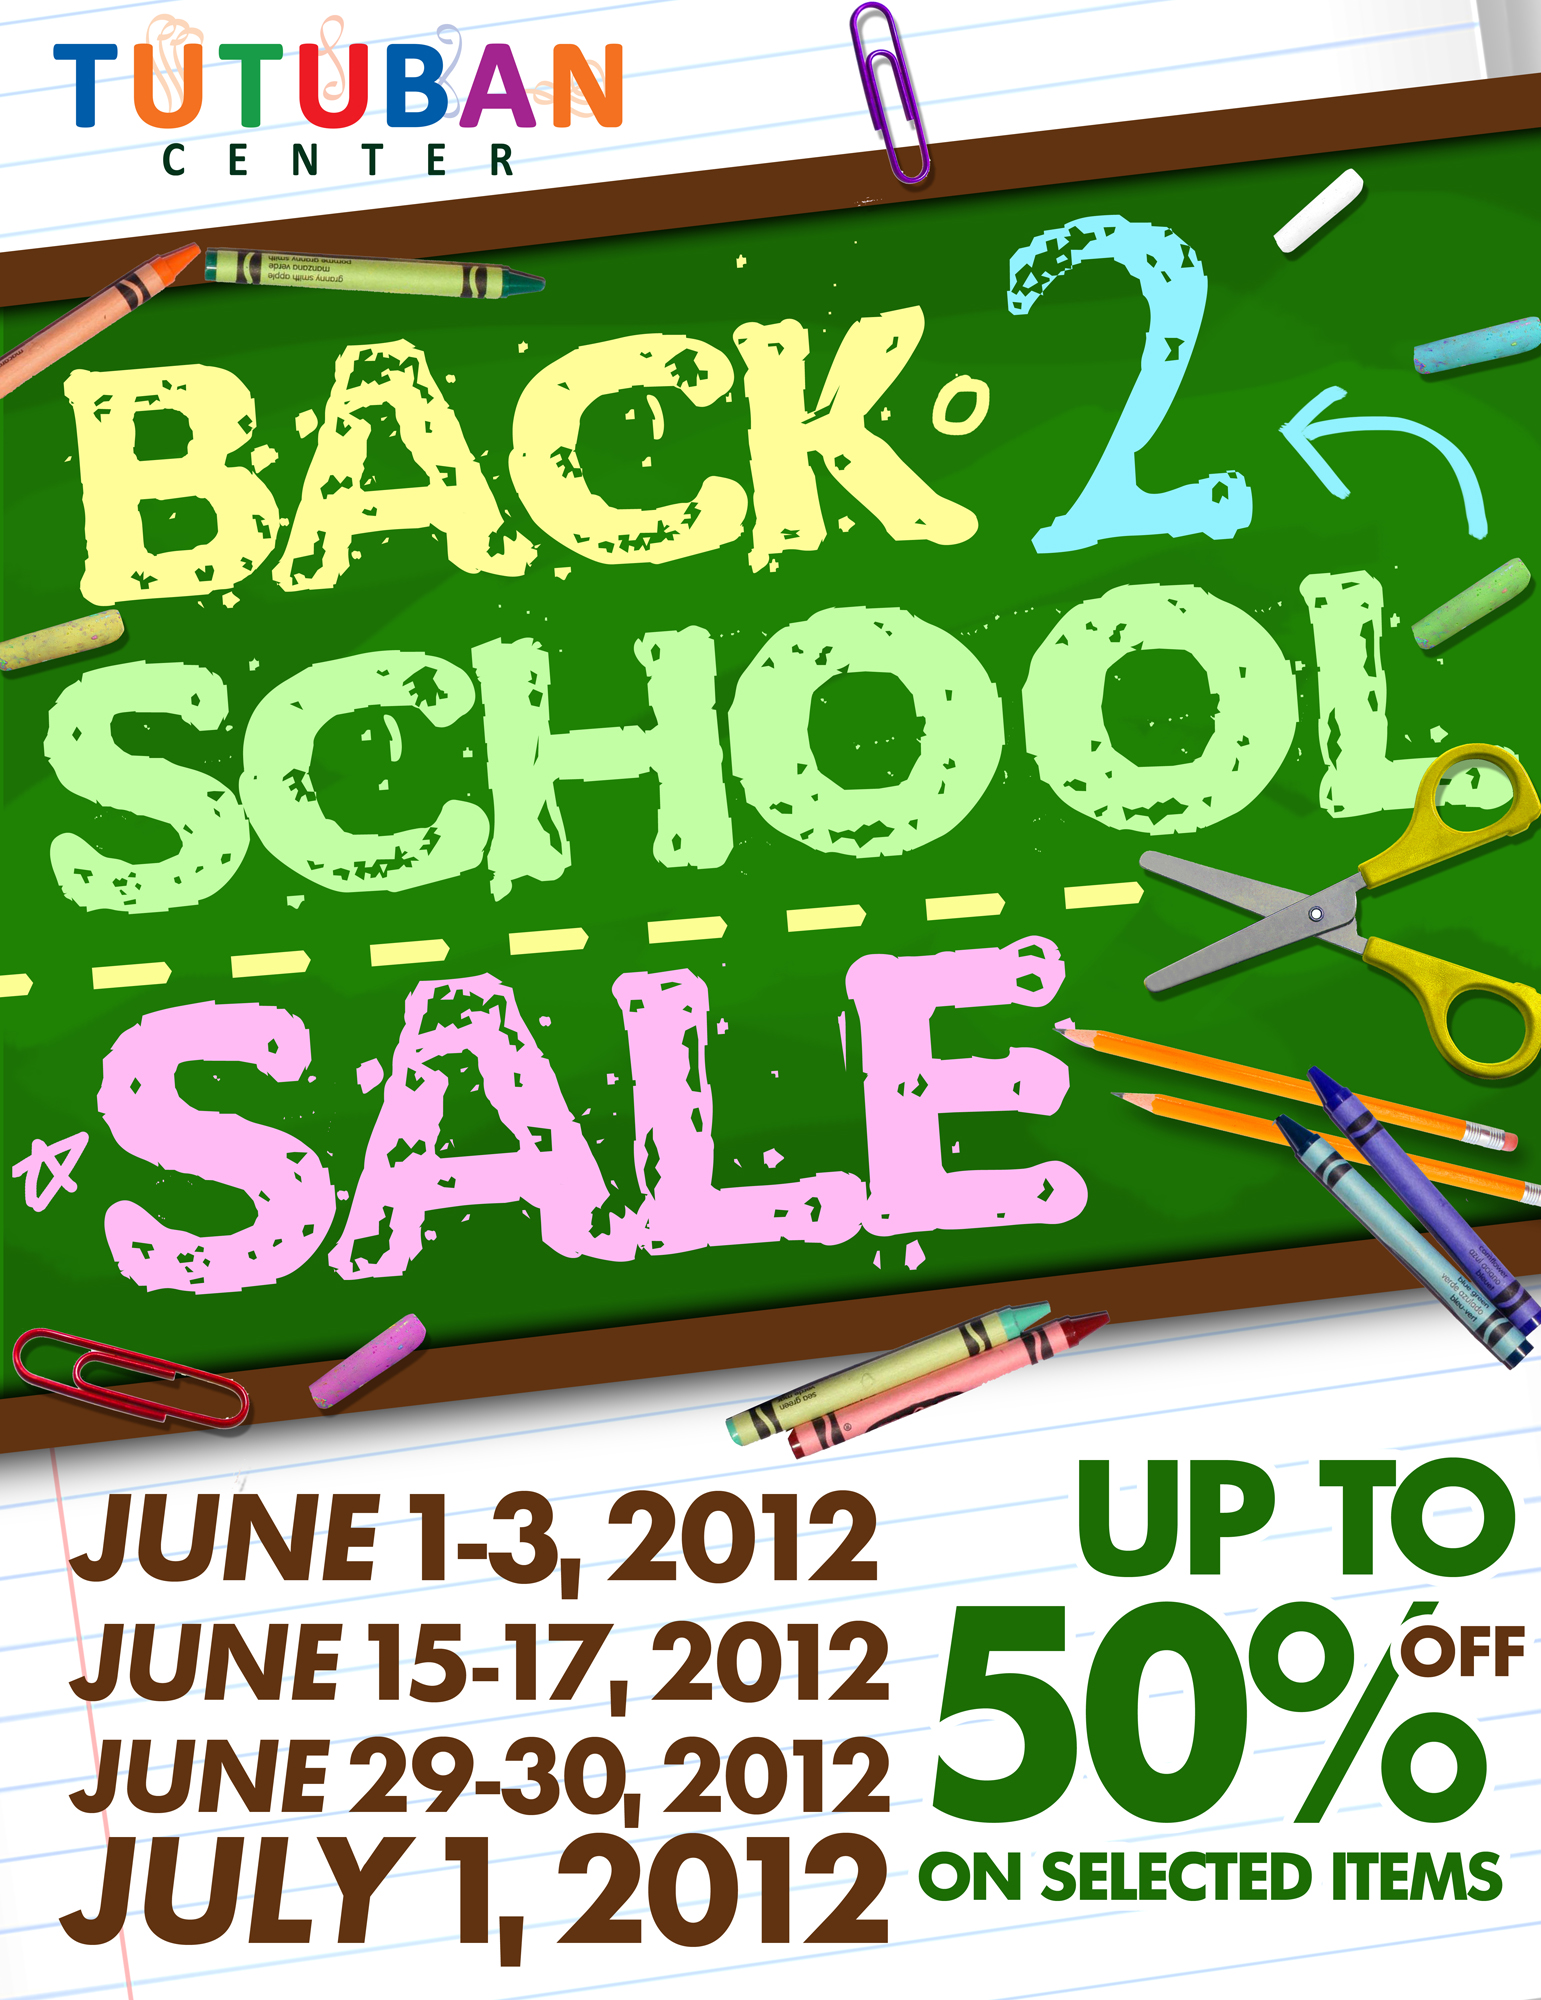 Tutuban Center Back 2 School Sale June - July 2012